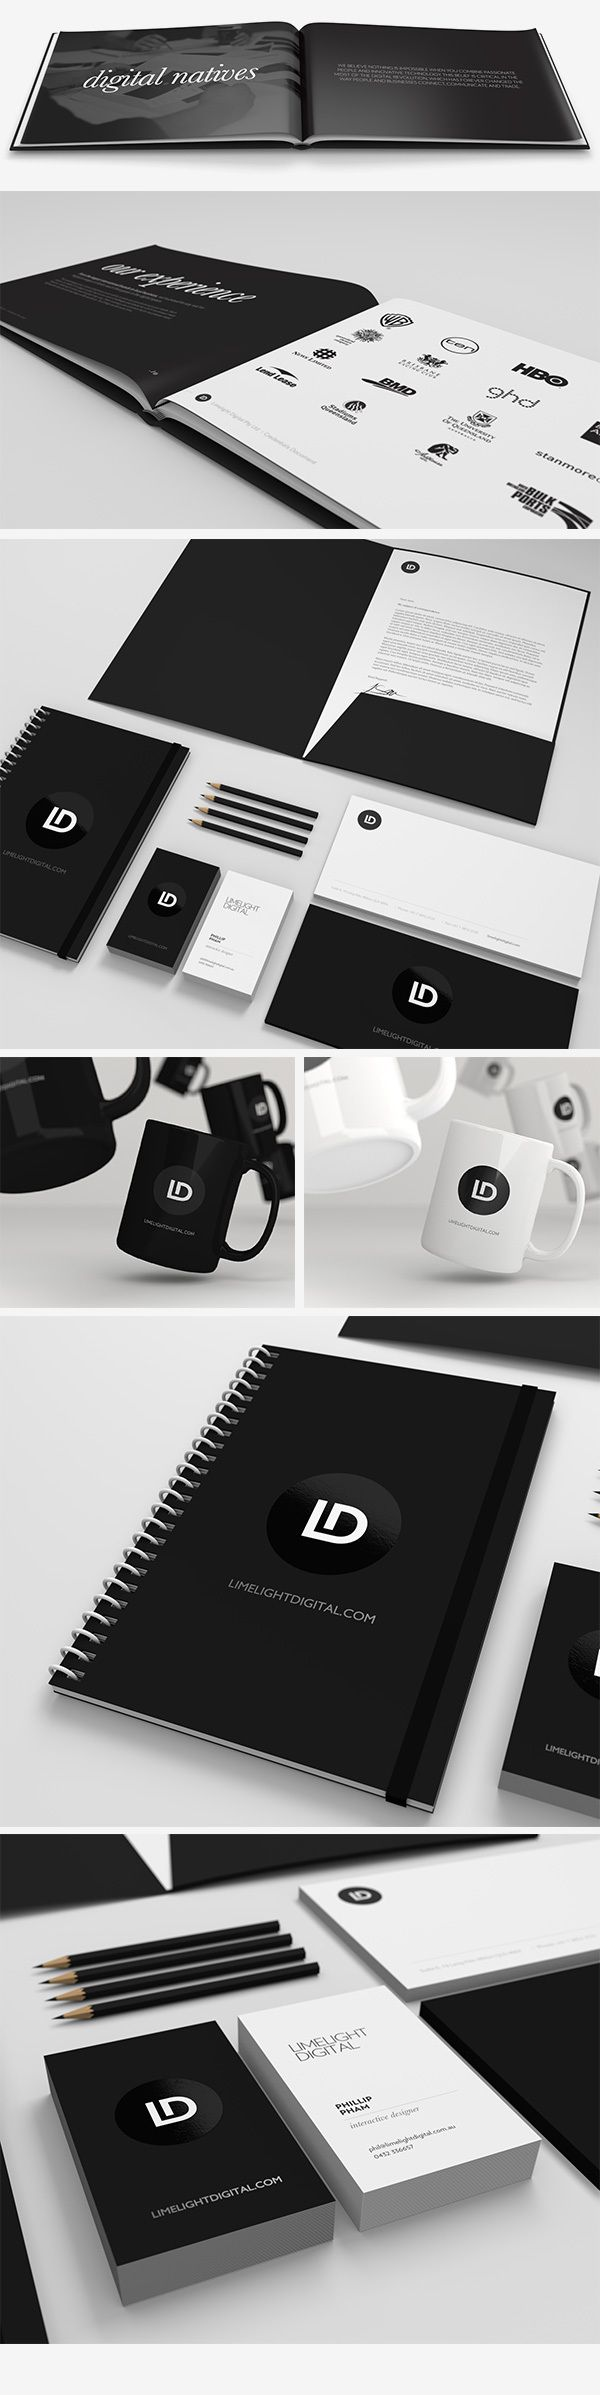 Limelight Digital, Re-Brand by Fred Nerby | #stationary #corporate #design #corporatedesign #logo #identity #branding #marketing <<< found on www.behance.net pinned by an #advertising agency from #Hamburg / #Germany - www.BlickeDeeler.de | Follow us on www.facebook.com/BlickeDeeler